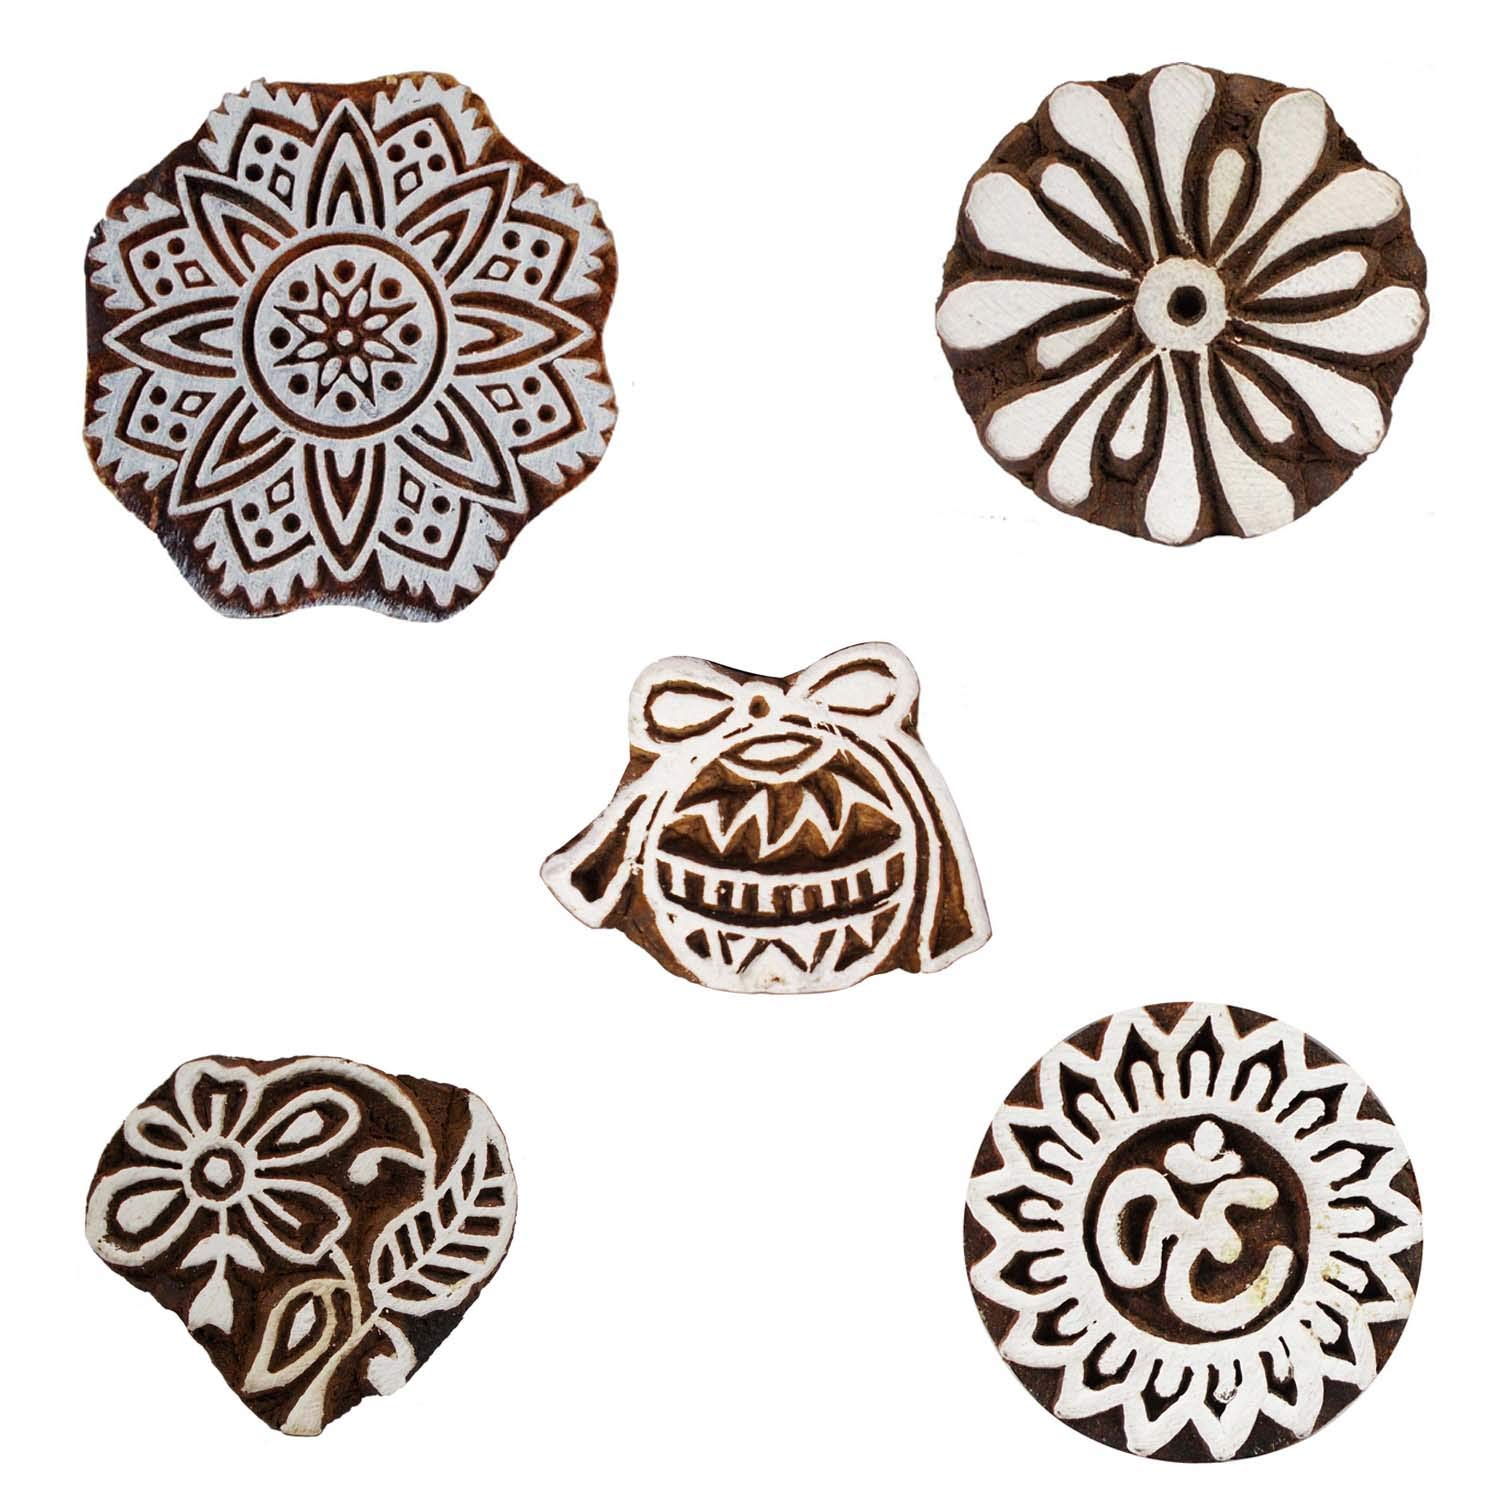 Wooden Block Printing Decorative Om and Floral Textile Stamp Pottery Fabric Clay Project Scrapbook Craft Blocks Set of 5 by CraftyArt